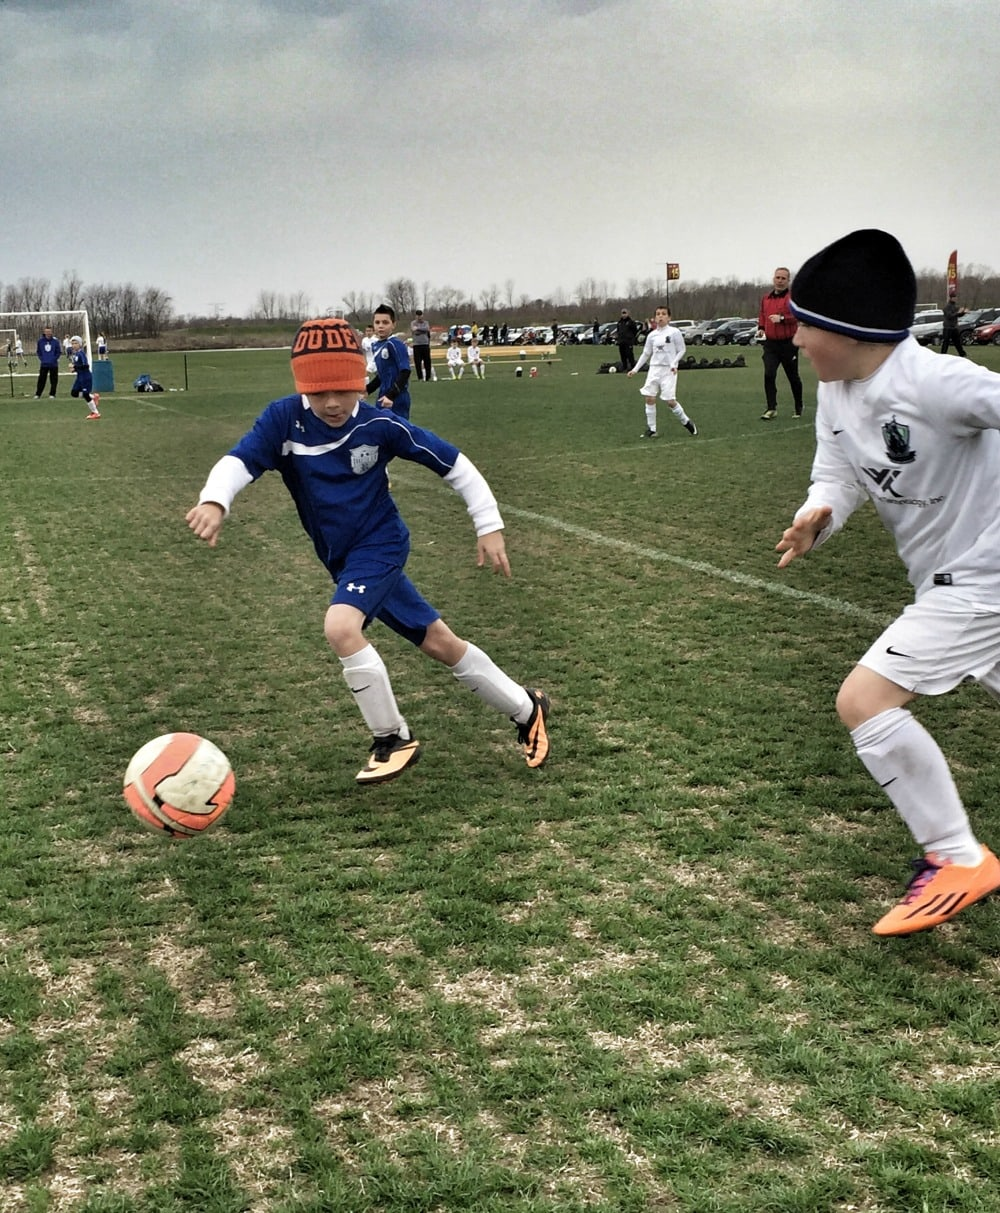 I Love To Watch You Play - The Six Words Your Child Needs To Hear - Cooper Soccer